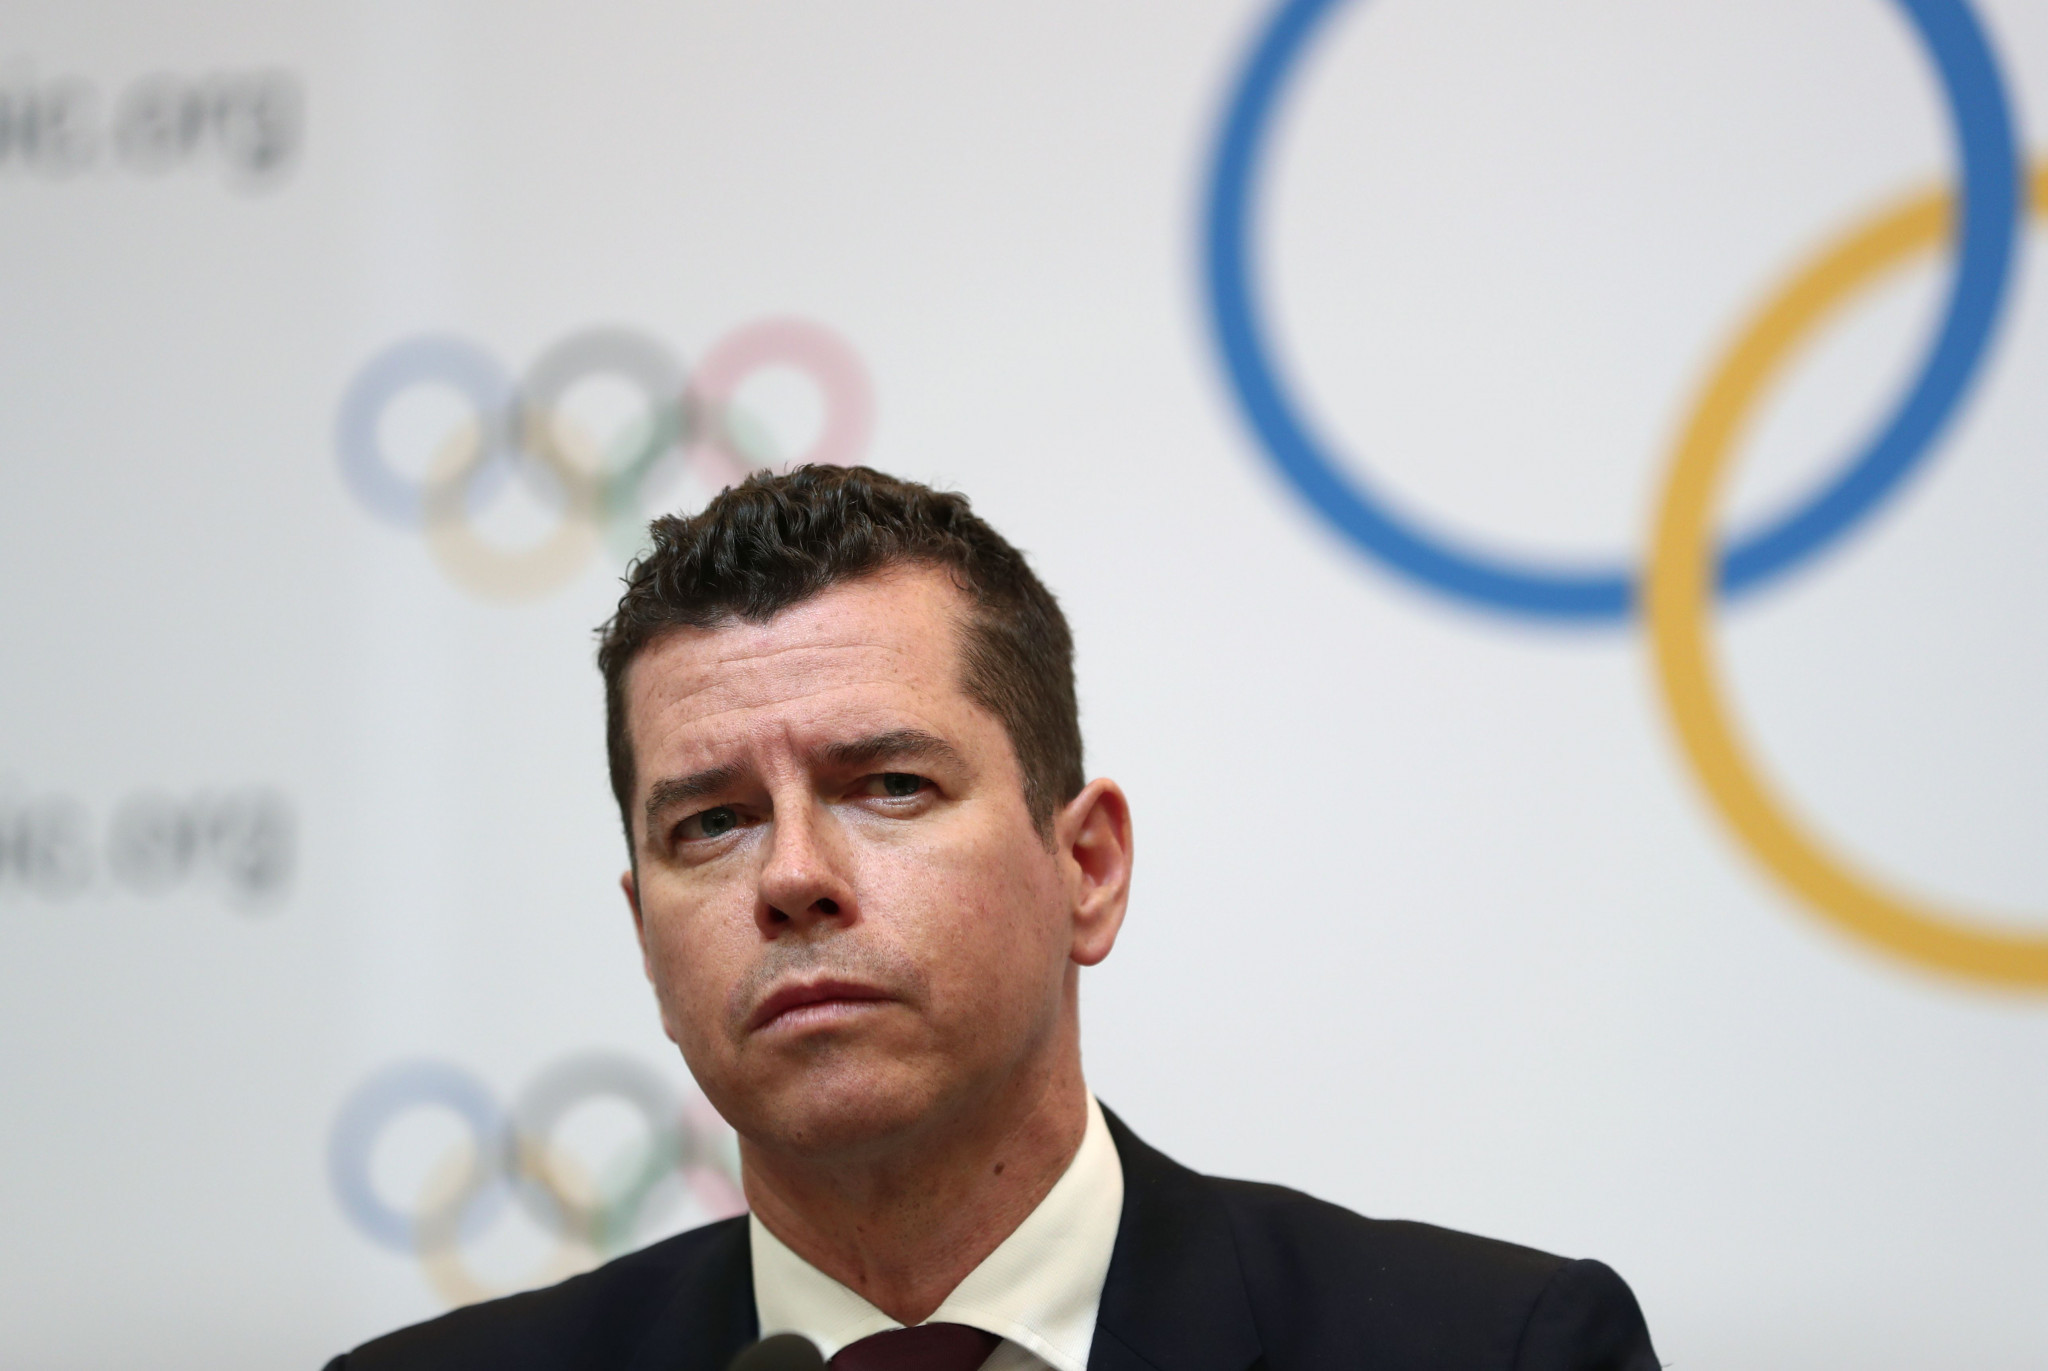 Athletes will not be disqualified for positive COVID-19 test at Tokyo 2020, IOC confirms